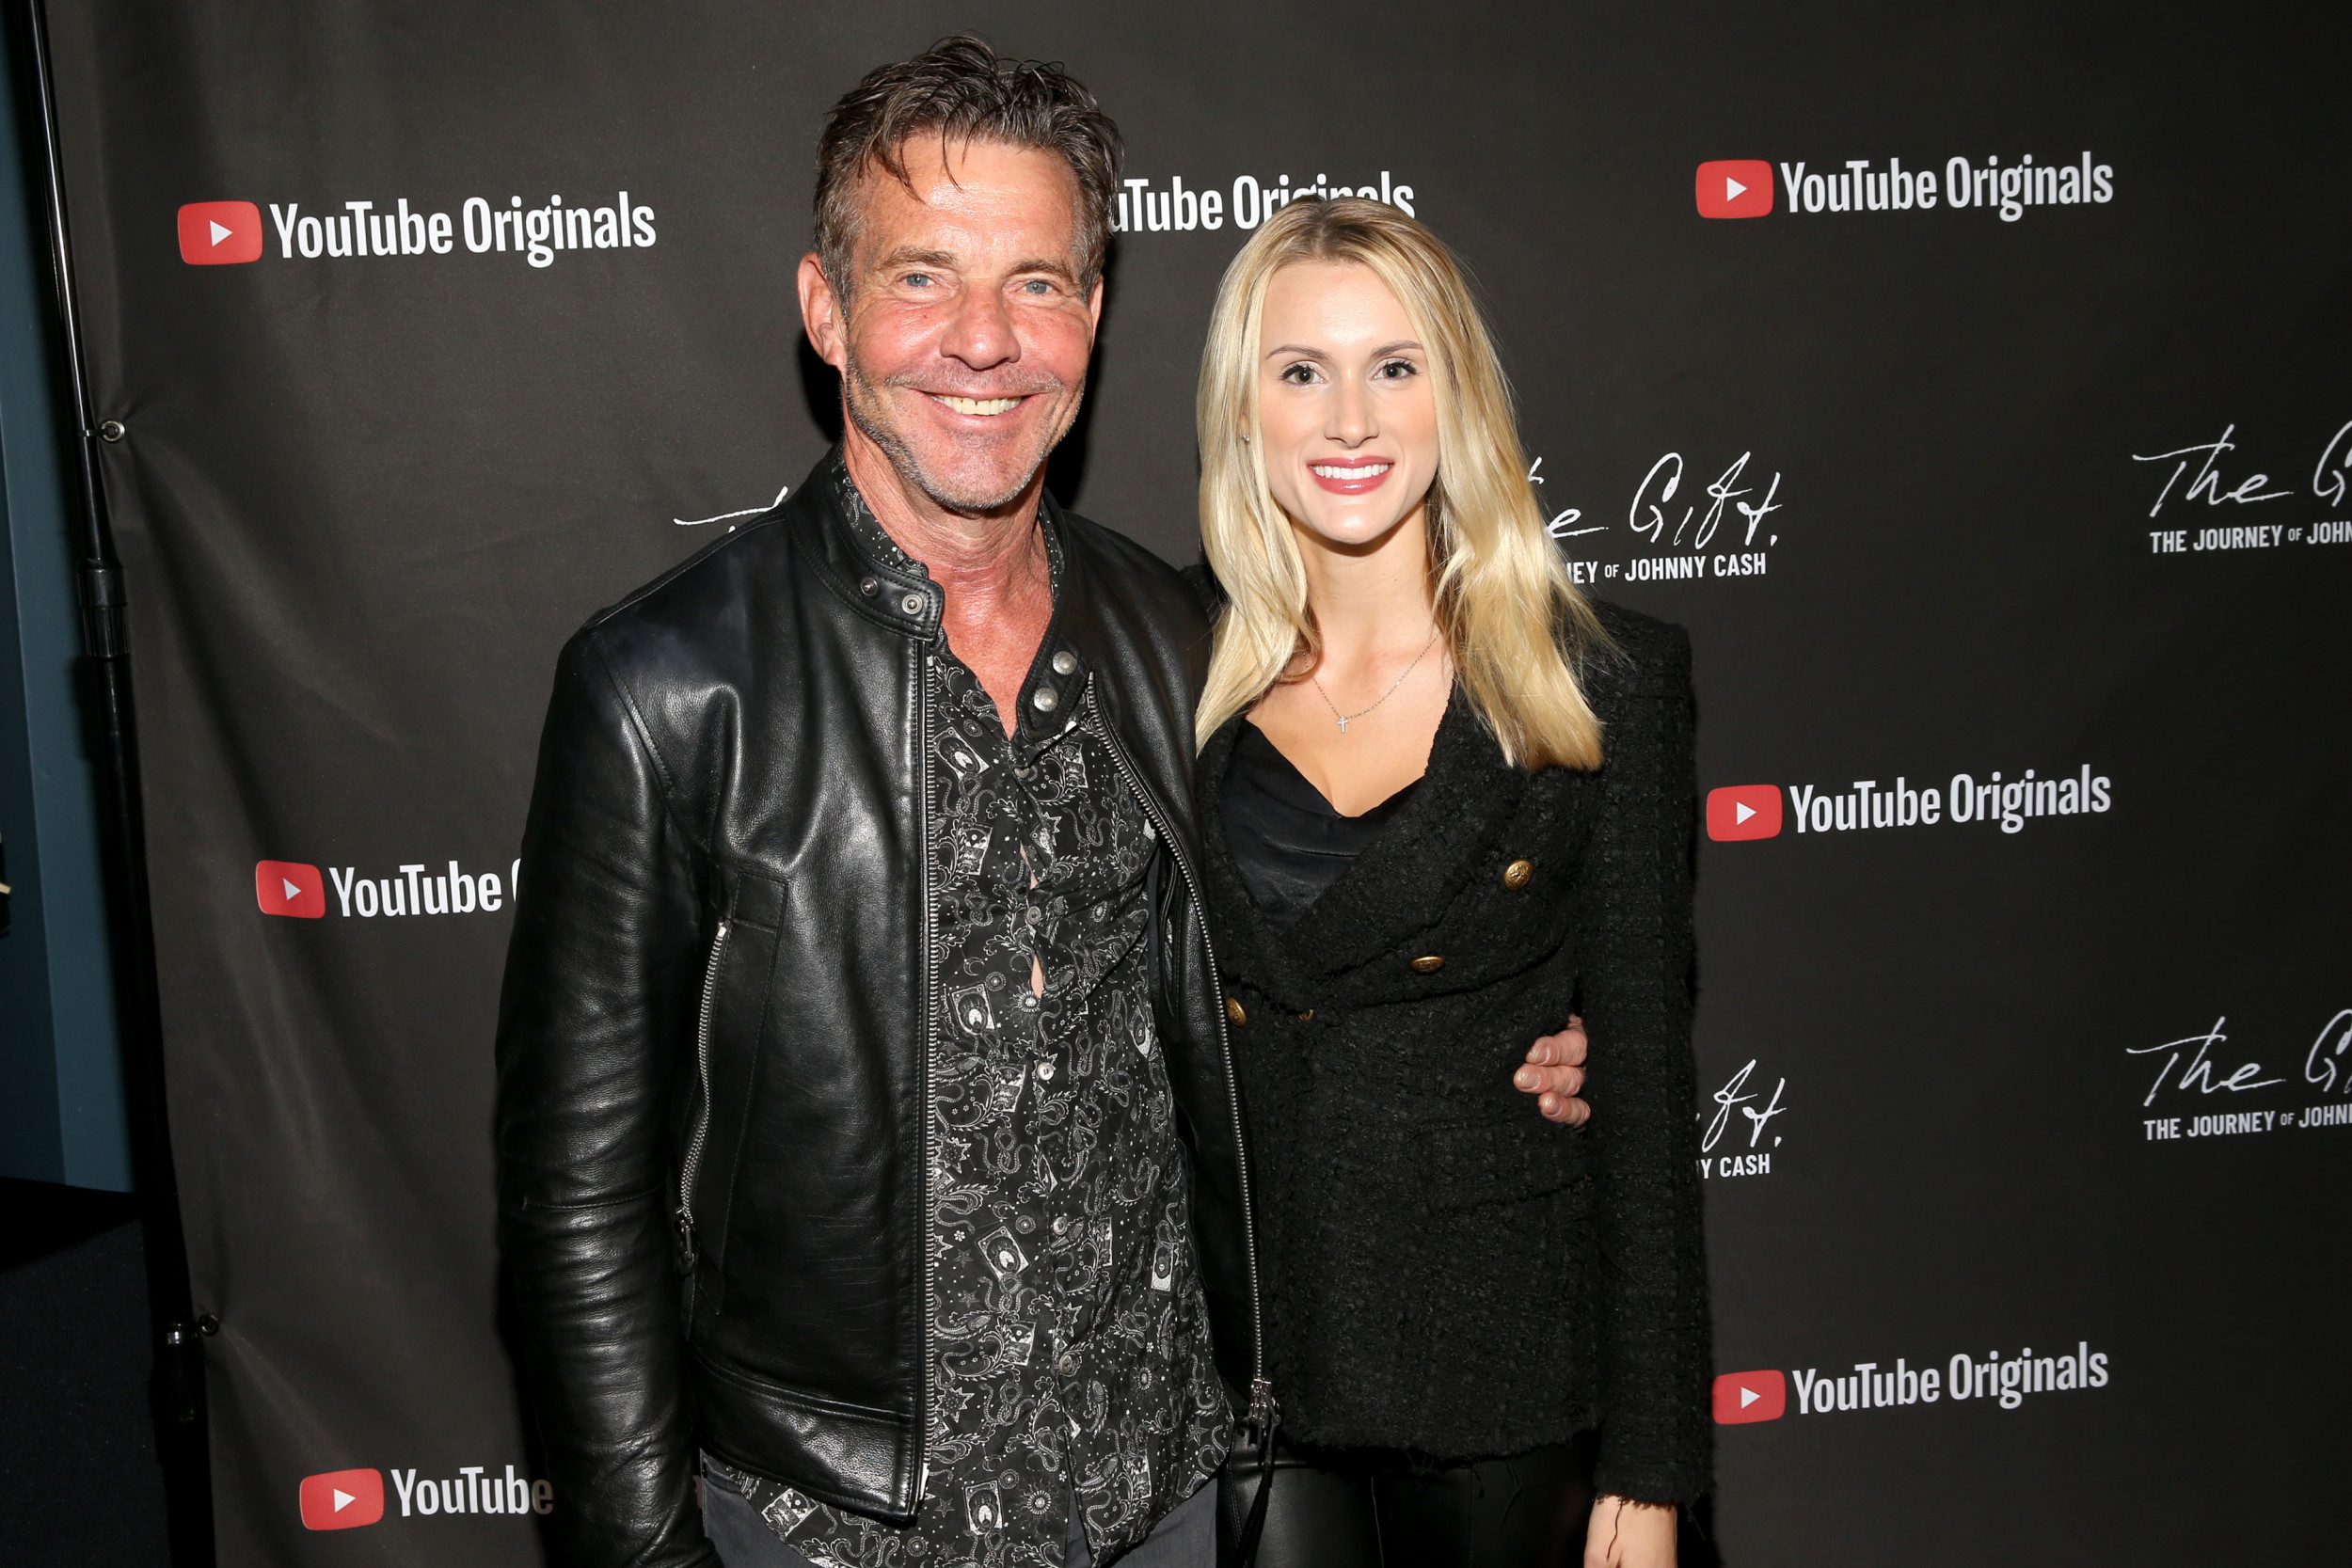 Dennis Quaid Responds to Reports He is Involved with an Secret Plot to Re-Elect the President